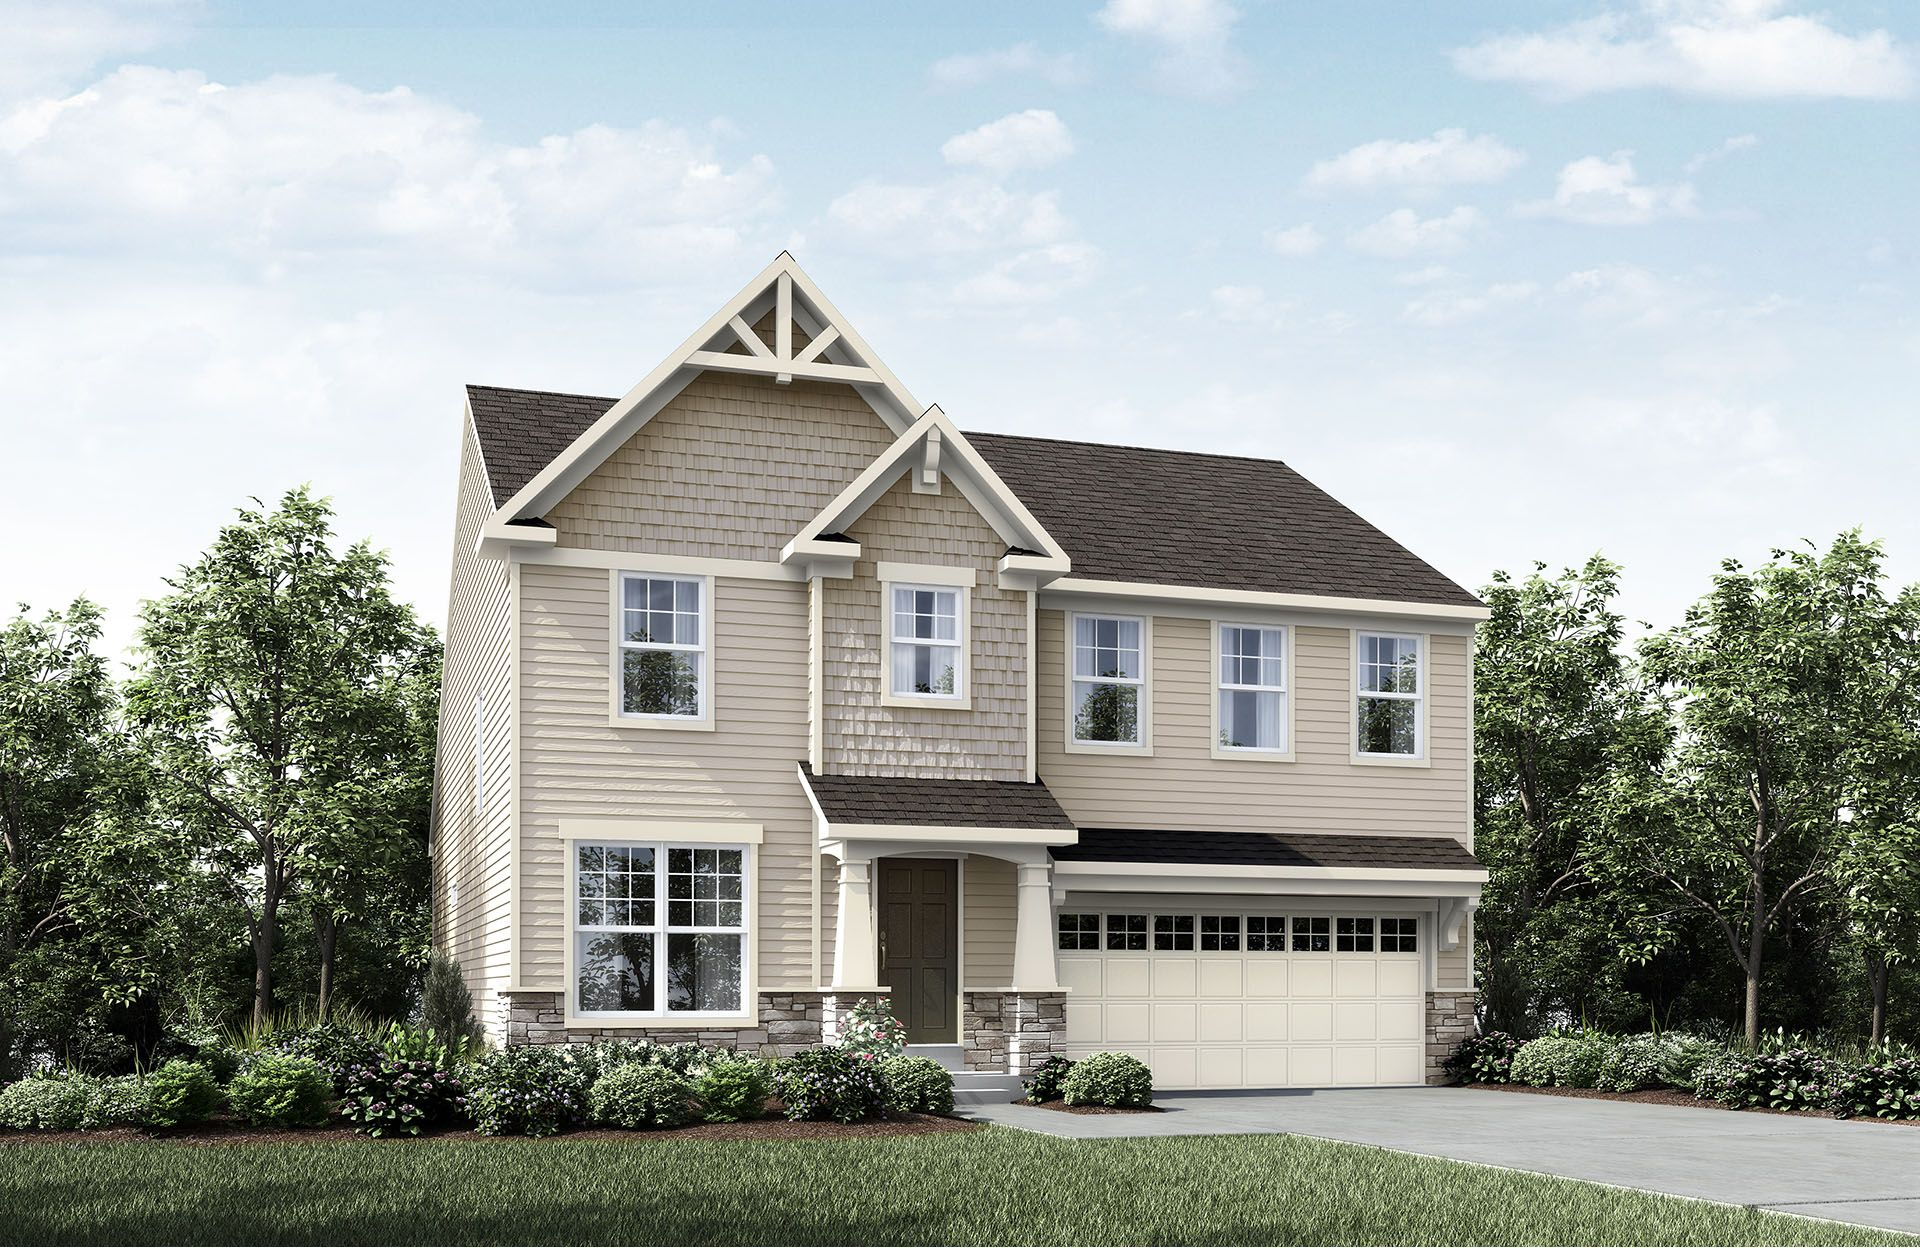 Baker's Creek at Echo Lake by Drees Homes